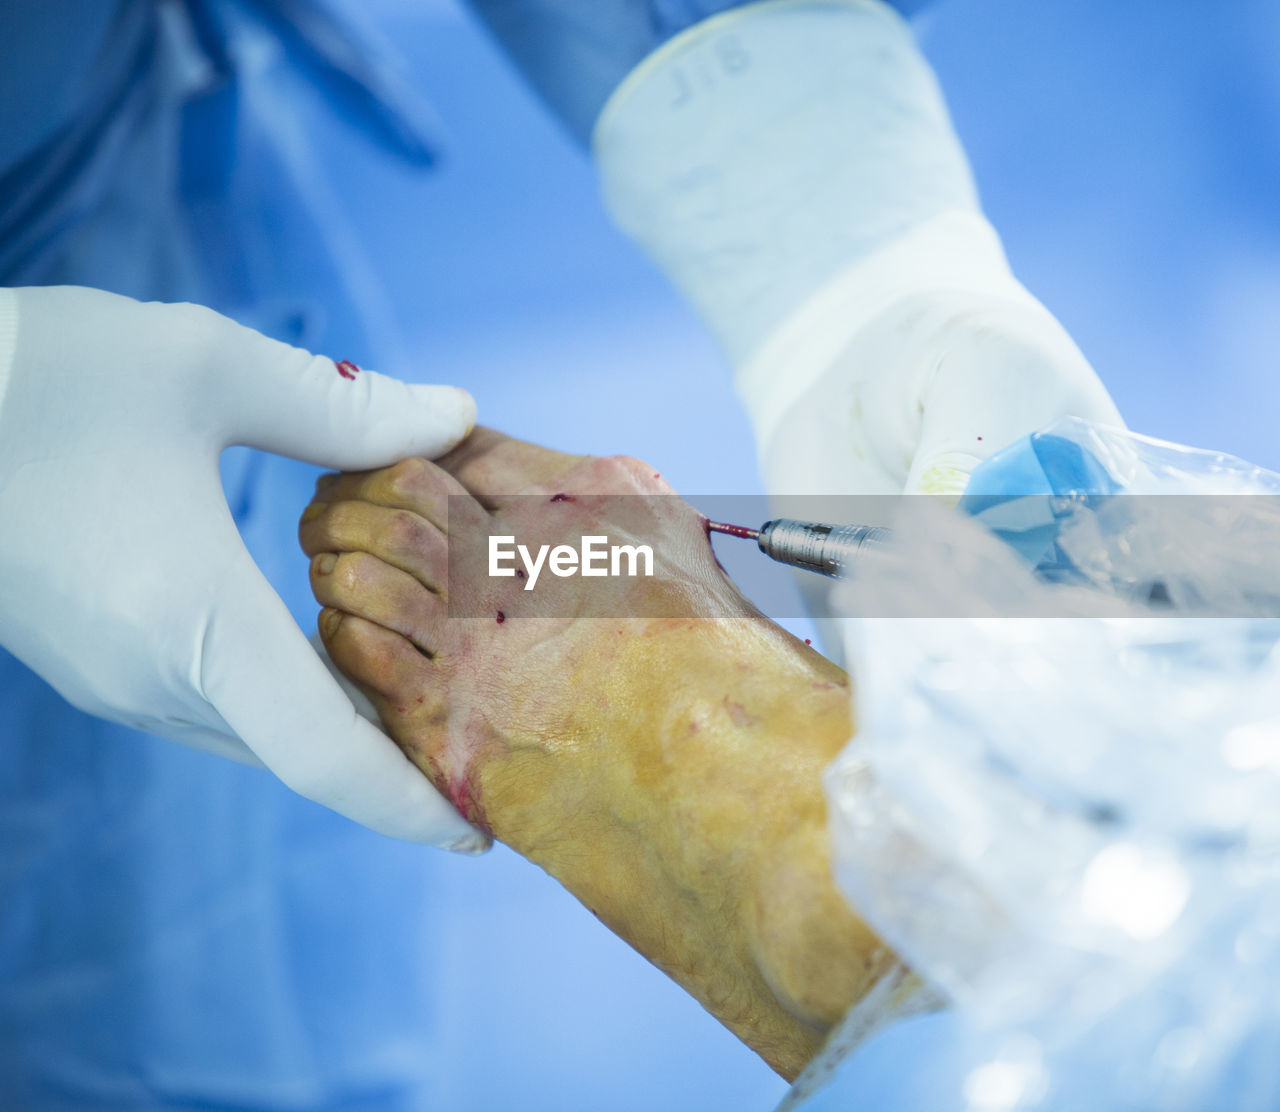 human hand, hand, occupation, human body part, doctor, healthcare and medicine, real people, hospital, surgical glove, two people, adult, holding, people, care, skill, patient, protective glove, surgeon, women, unrecognizable person, healthcare worker, iv drip, responsibility